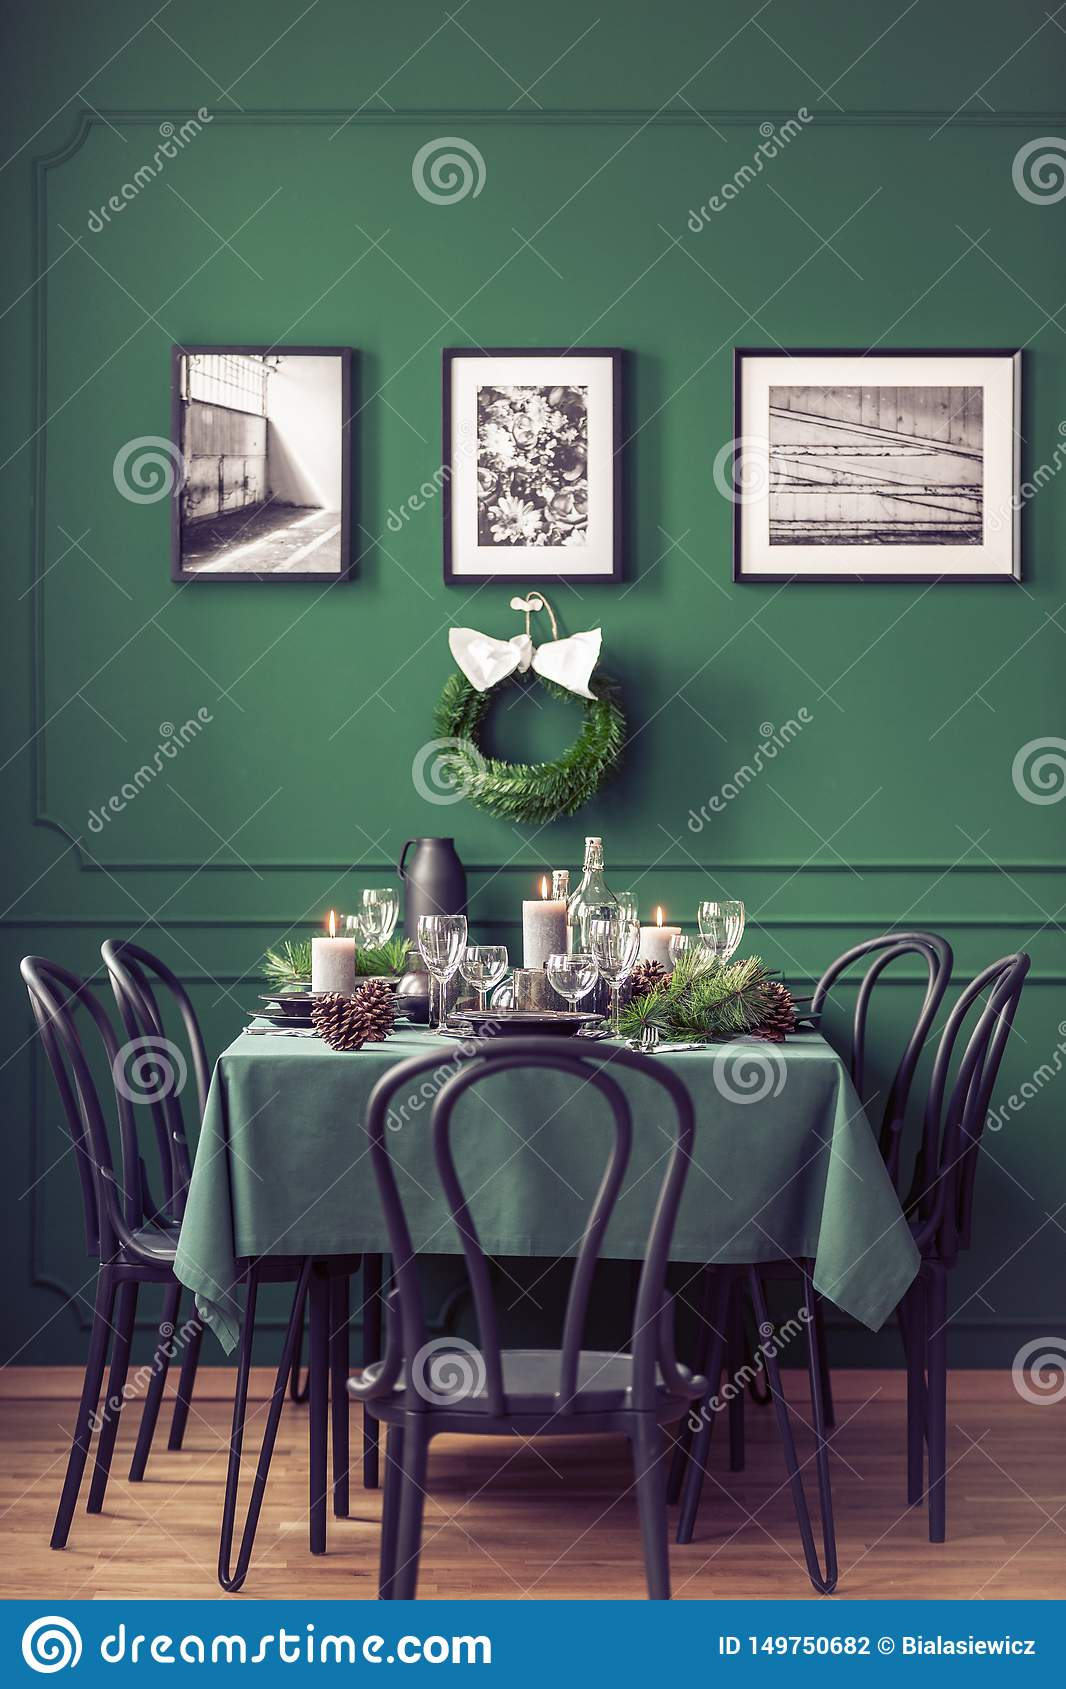 Elegant dining room table with wine glasses, plates and candles set for christmas dinner, gallery of black and white posters on